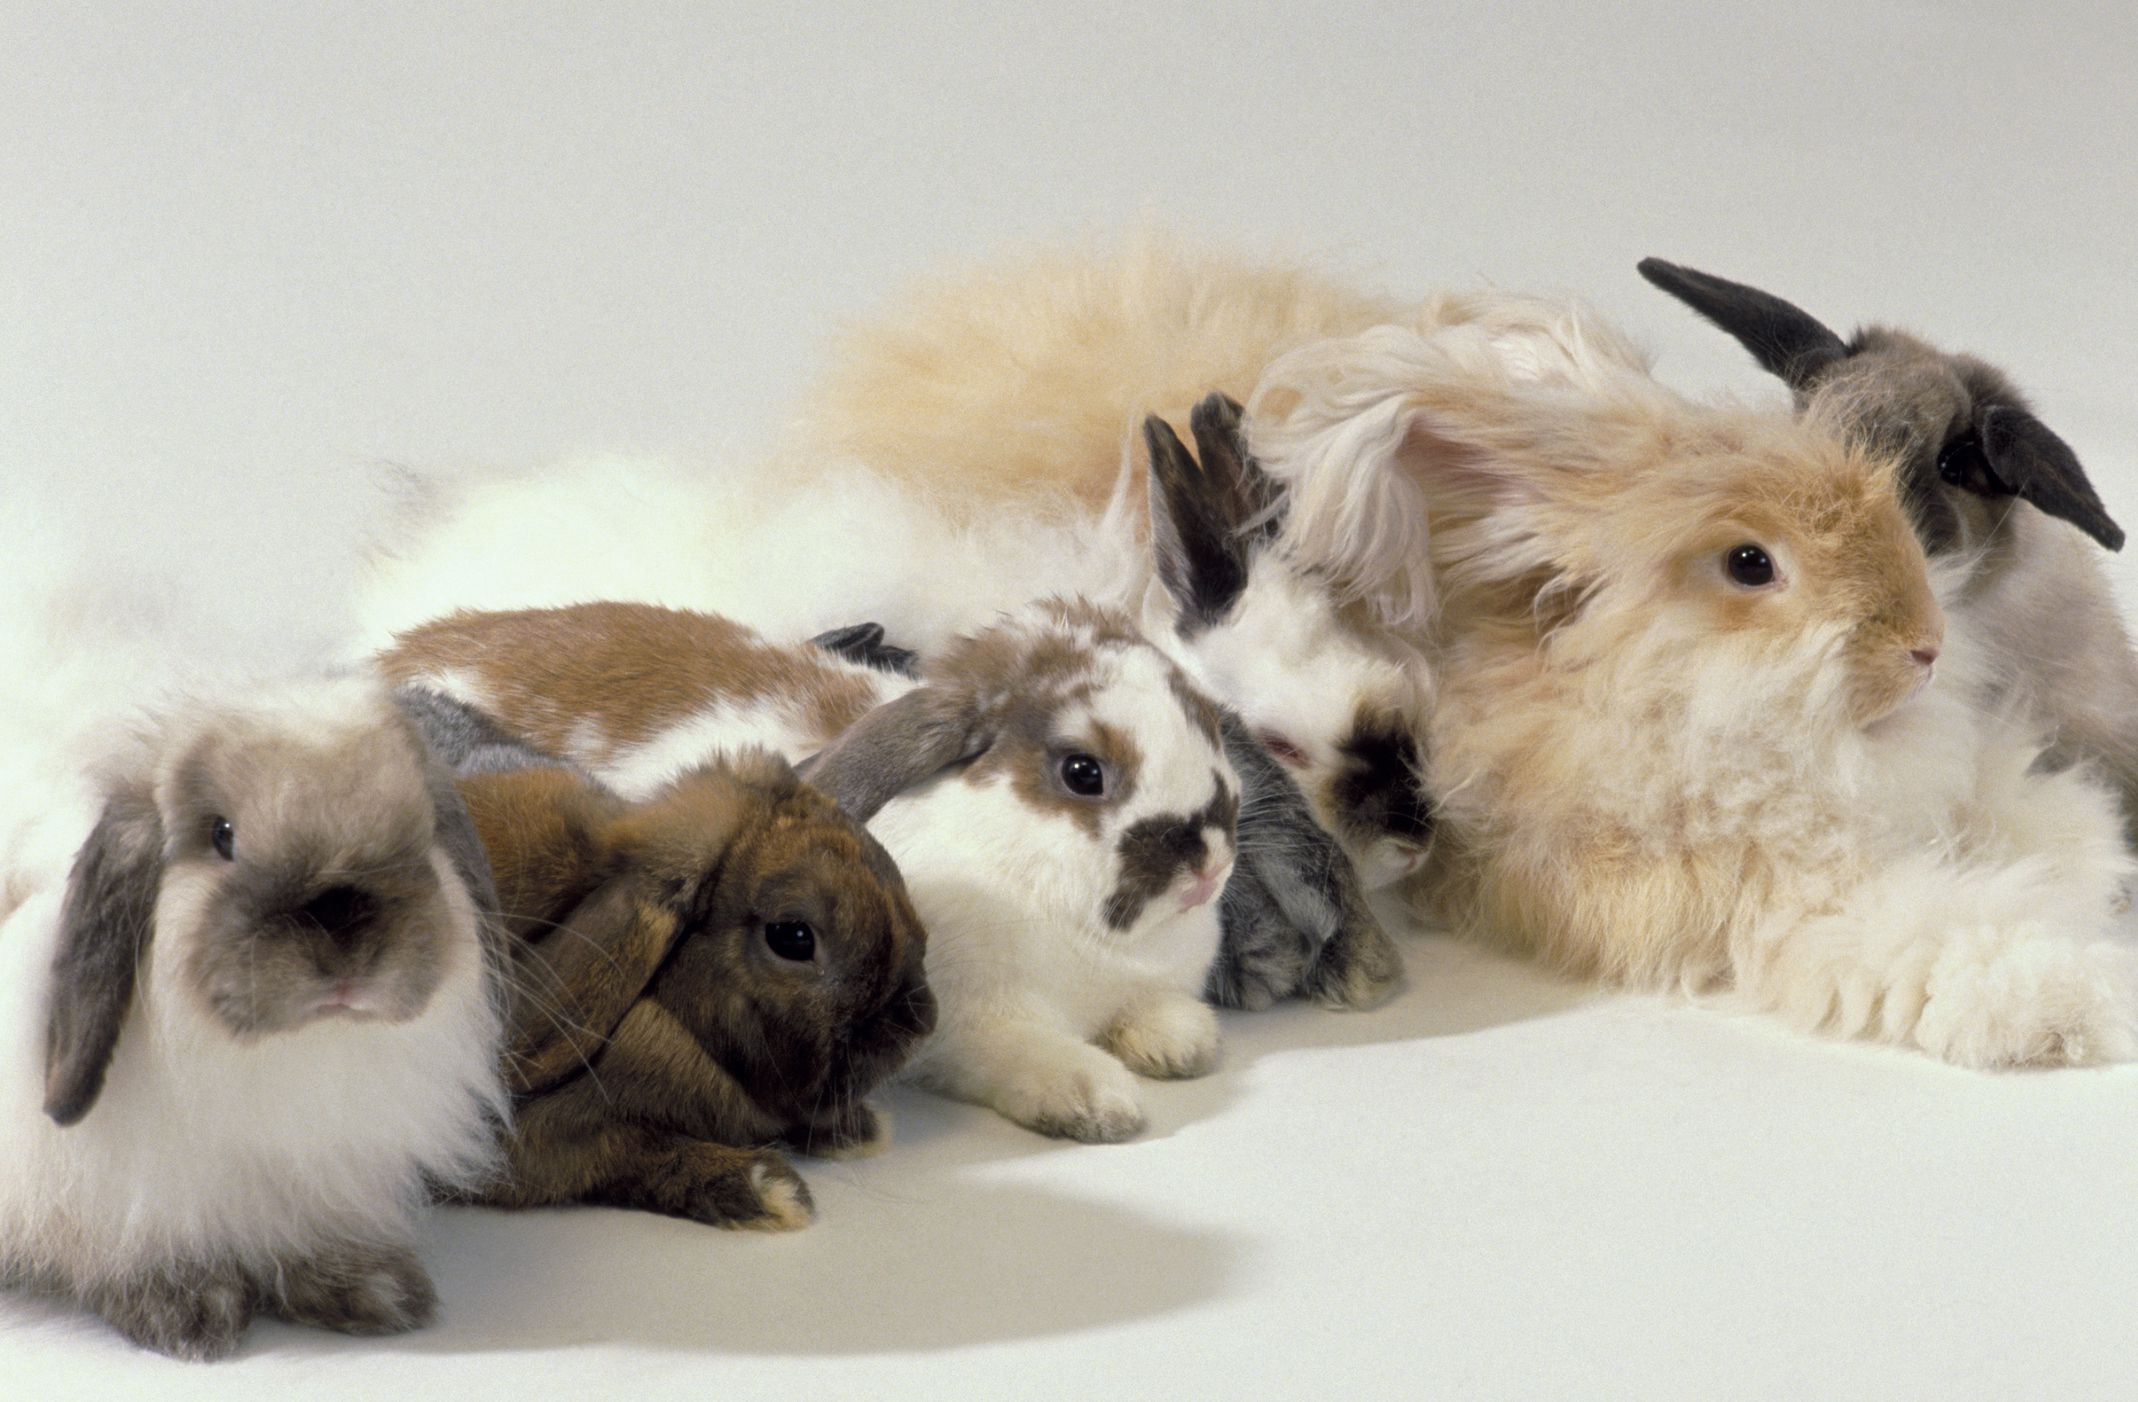 There Are Many Different Rabbit Color Variations Learn About The Different Patterns Of Rabbits Fur From Agouti To T Pet Rabbit Rabbit Colors Pet Rabbit Care